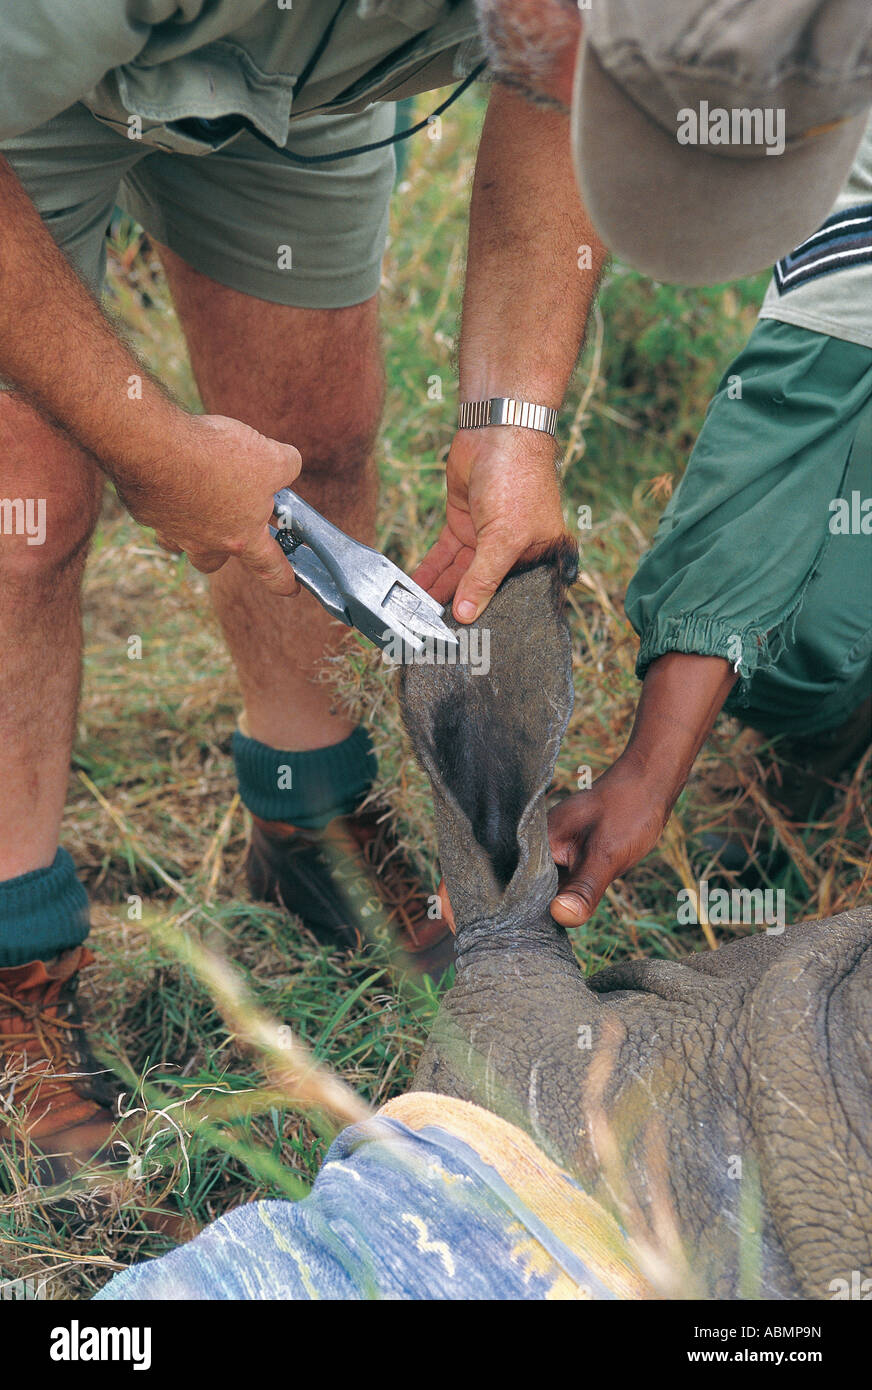 Ear notching of White Rhino for identification purposes Mkuzi Game Reserve Natal South Africa - Stock Image